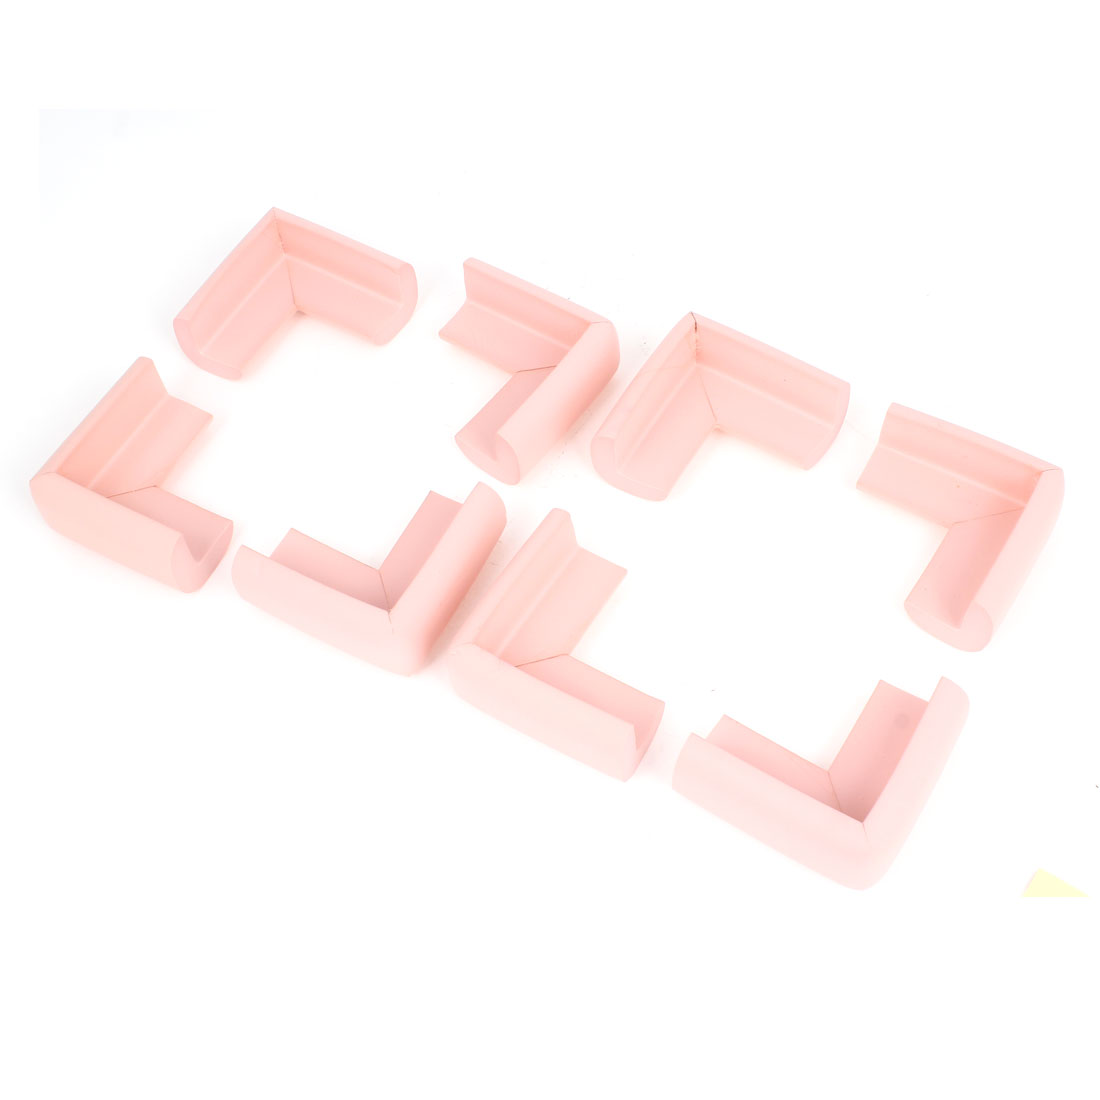 Pink Foam Table Cupboard Corner Cover Guard Protector Cushion 8Pcs